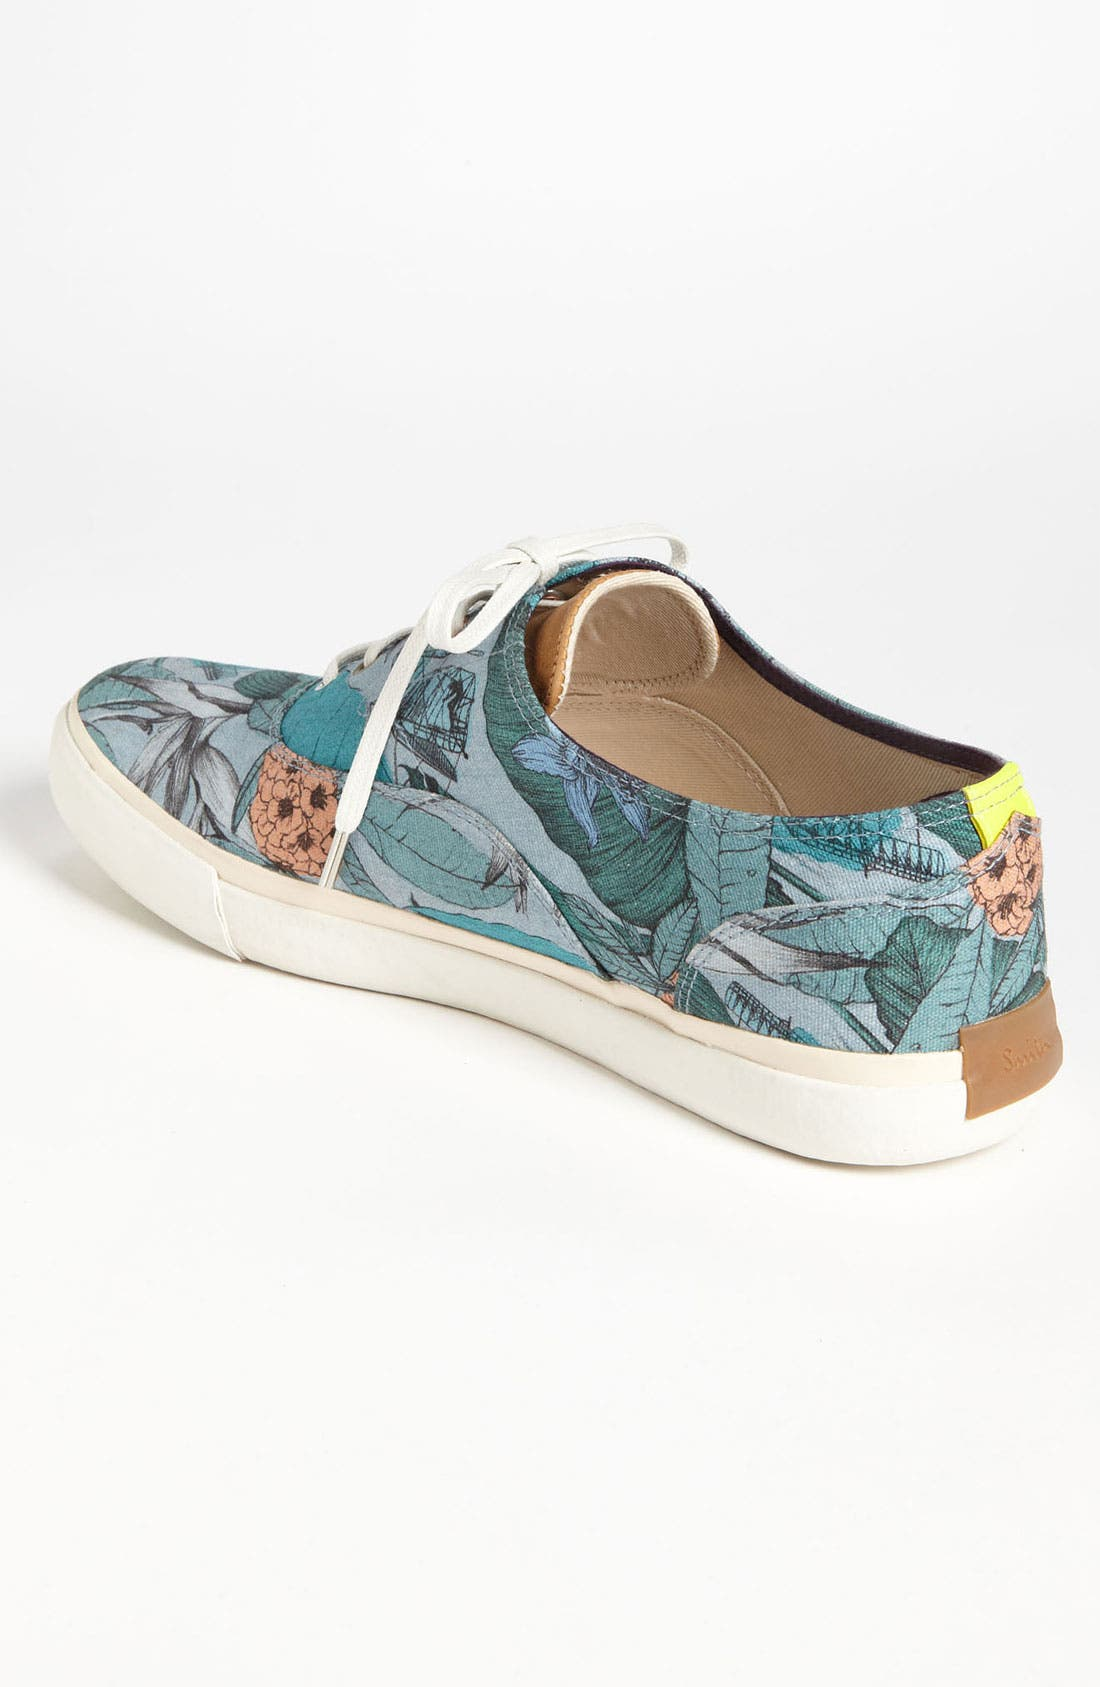 Alternate Image 2  - Paul Smith 'Balfour' Print Sneaker